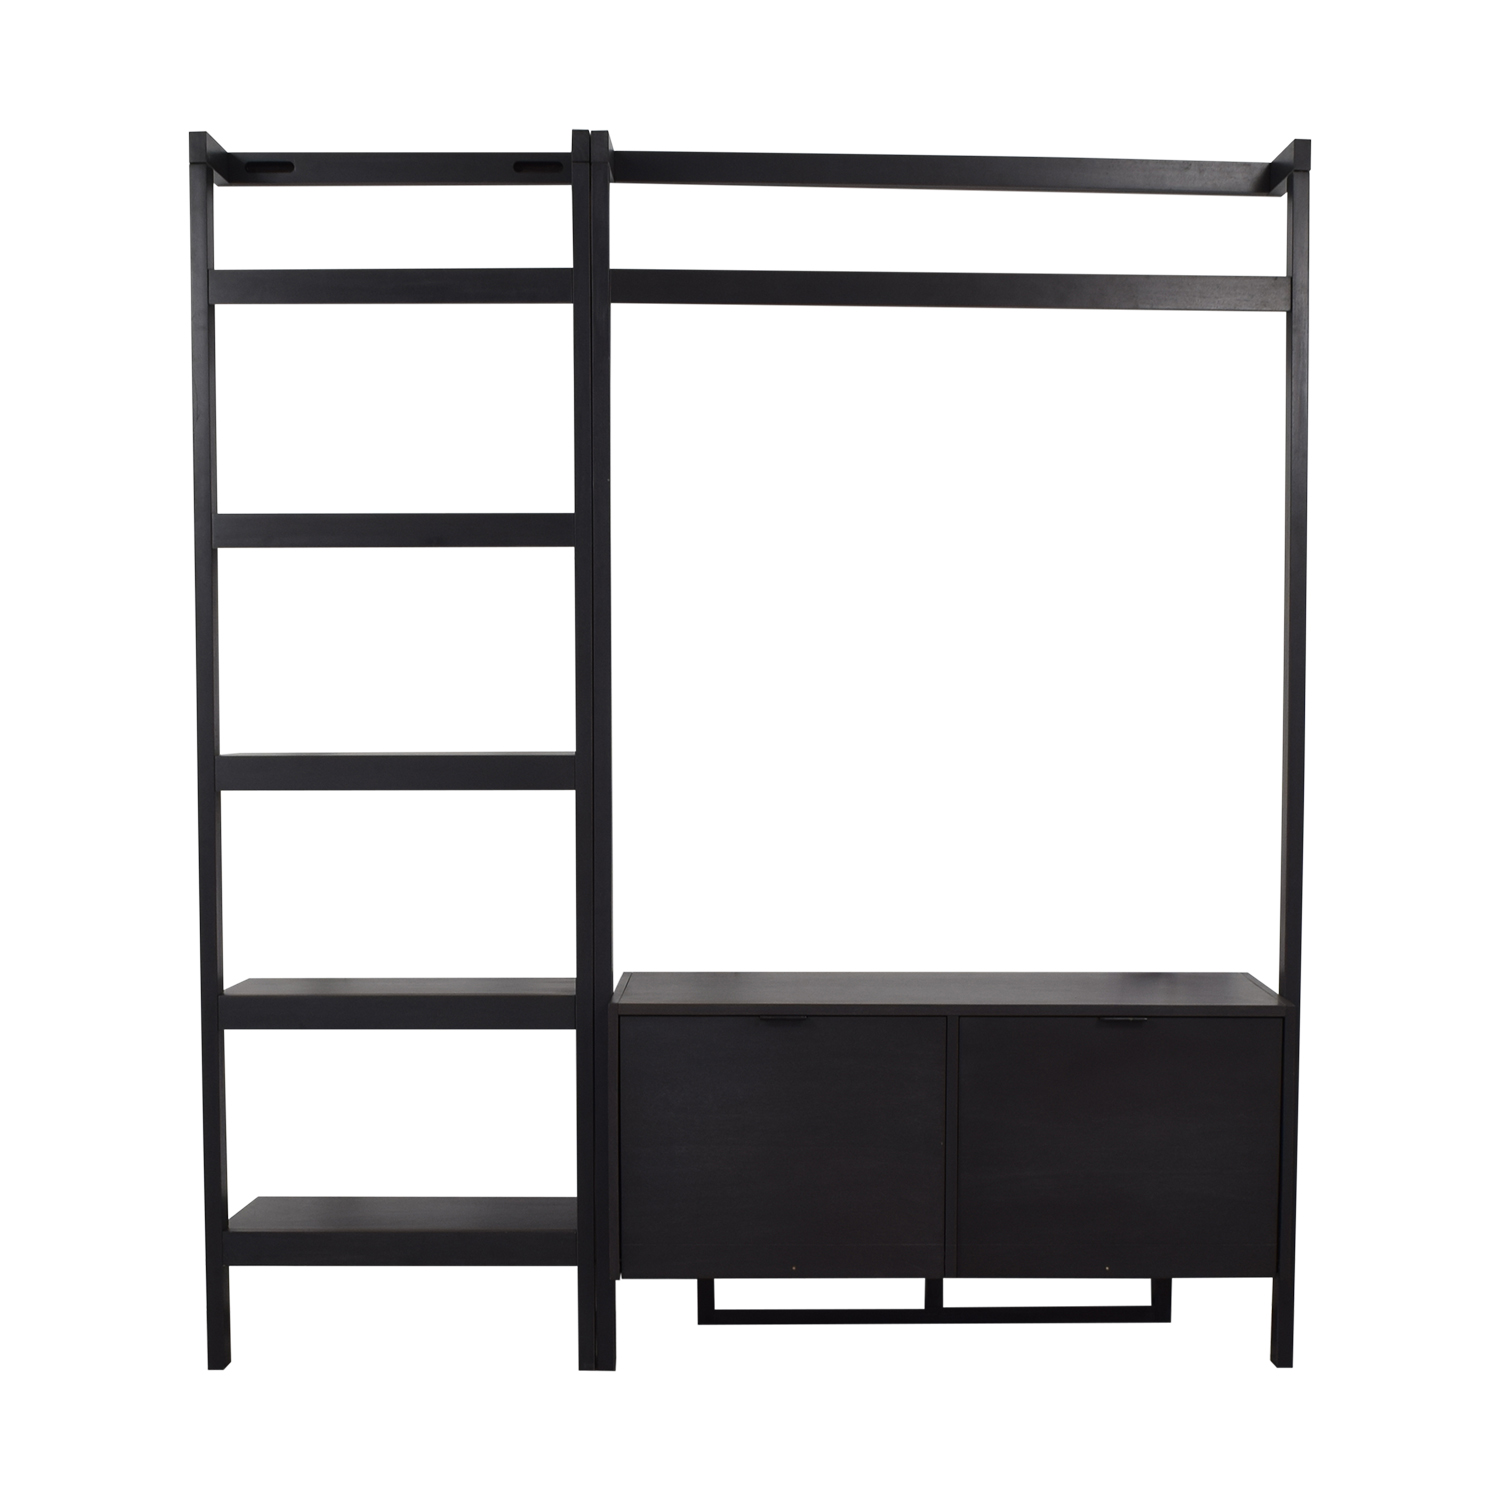 Crate & Barrel Crate & Barrel Sawyer Media Unit and Bookshelf discount